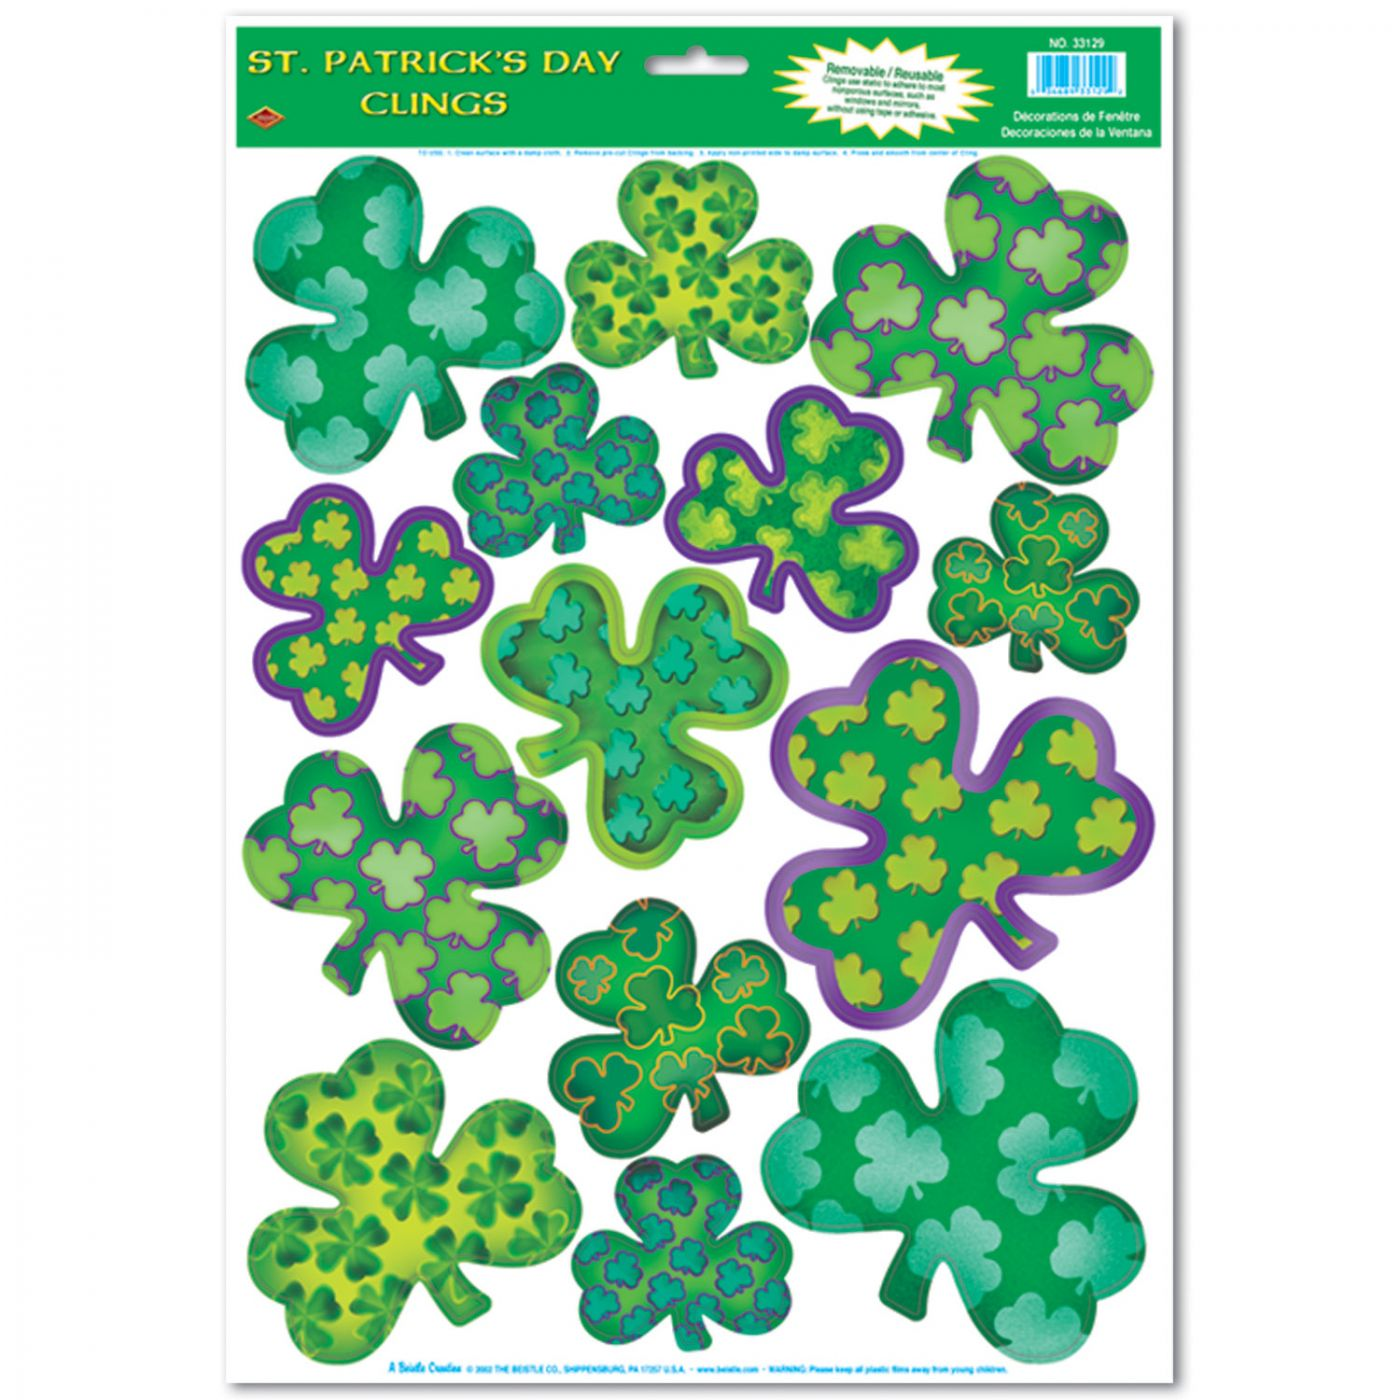 Irish-Mood Shamrock Clings image